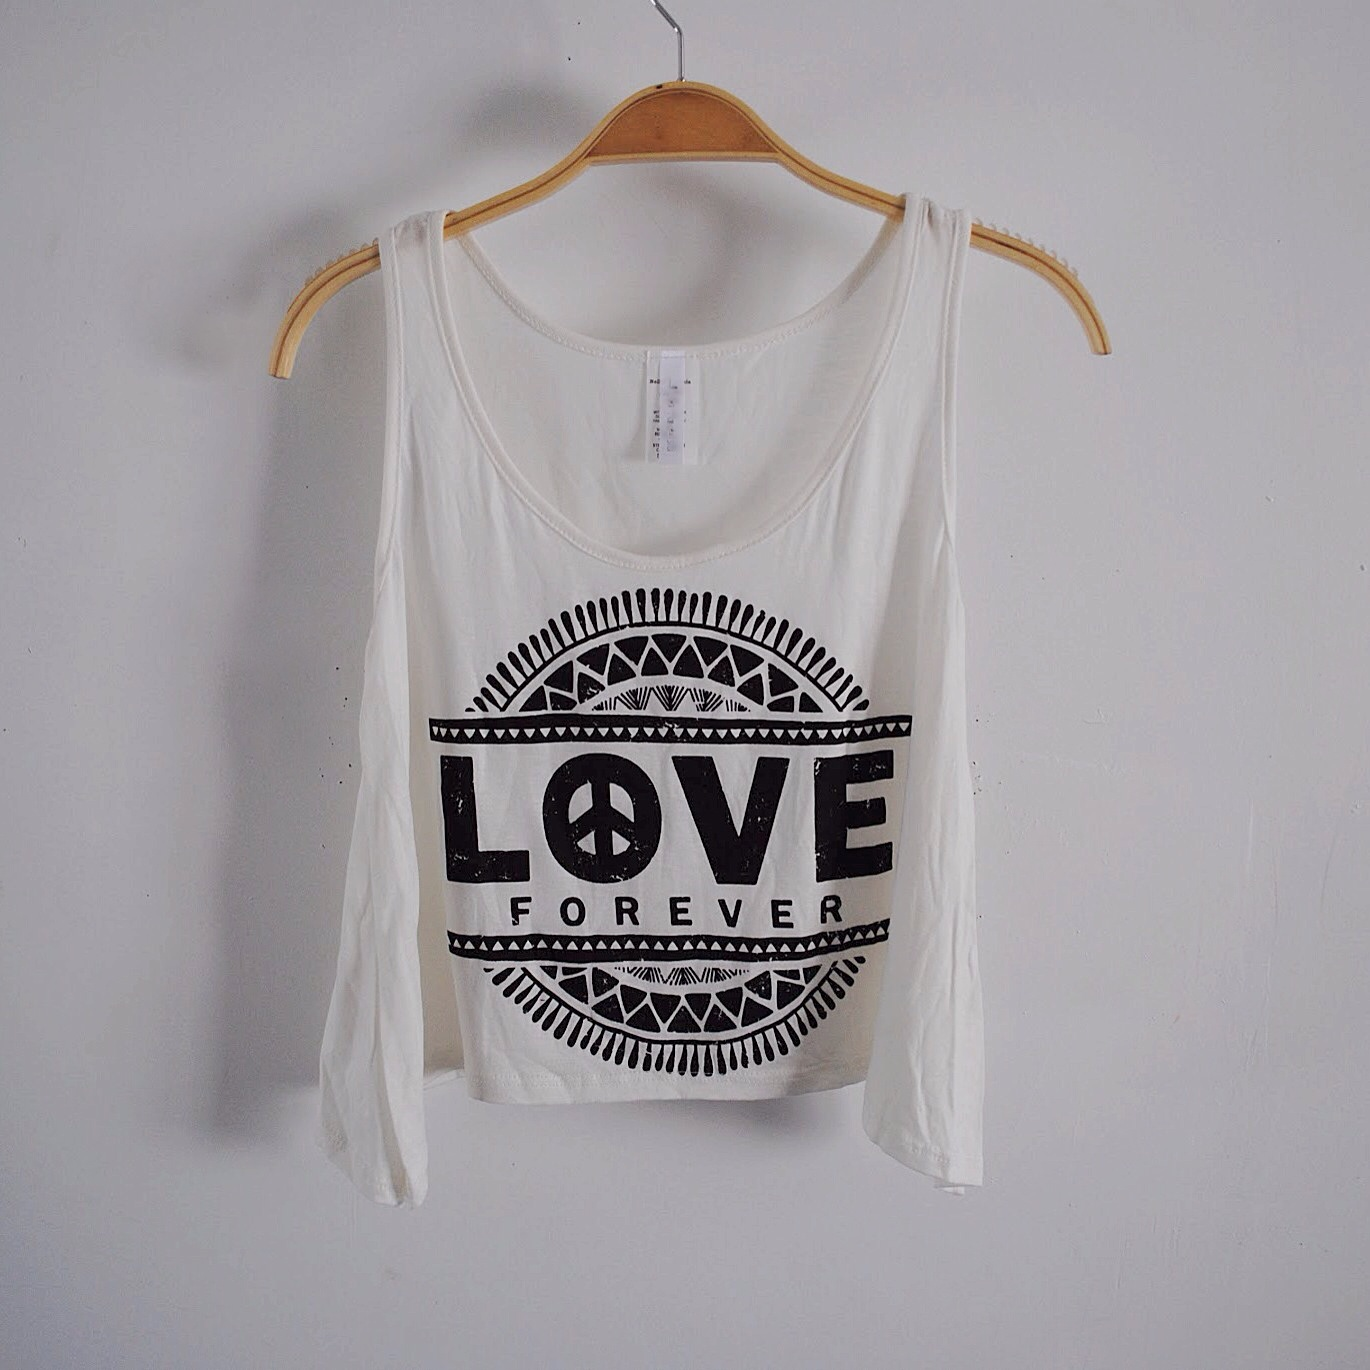 Love forever tank (white) from ootdfash on storenvy